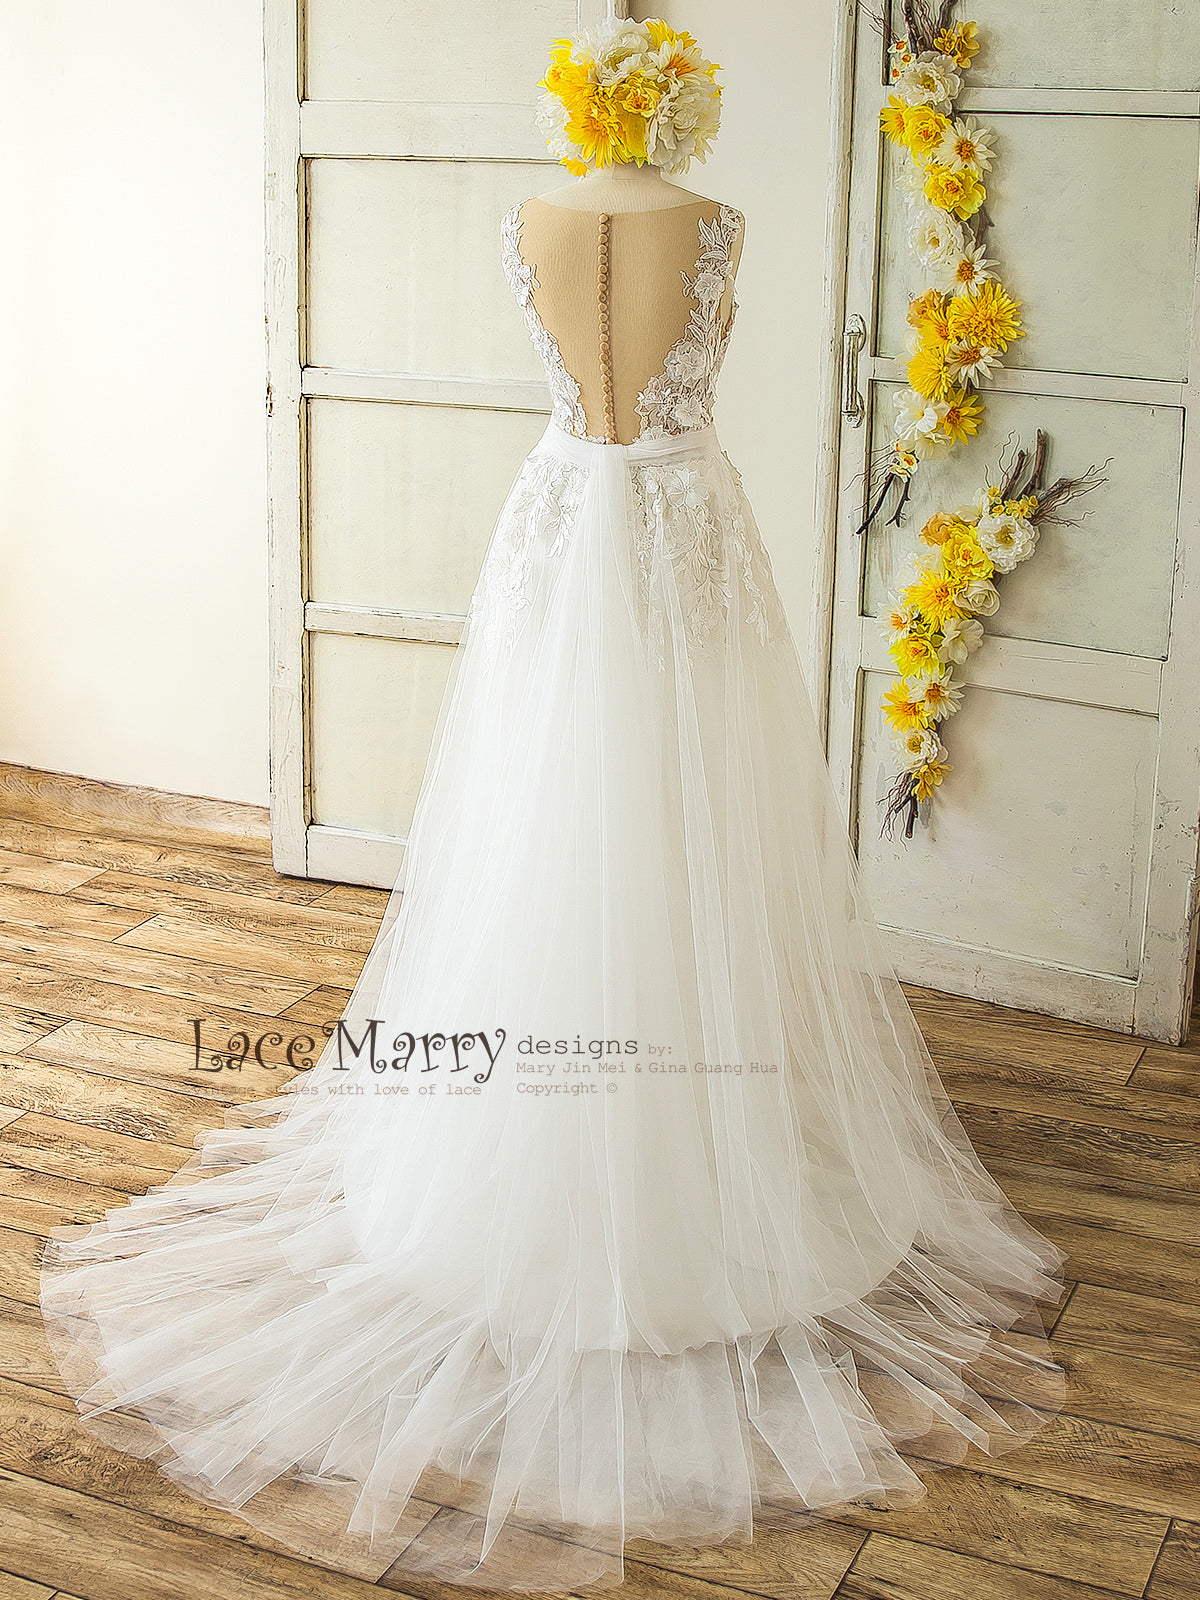 55d5c431ce1 3D Lace Boho Wedding Dress with Sheer Nude Top - LaceMarry